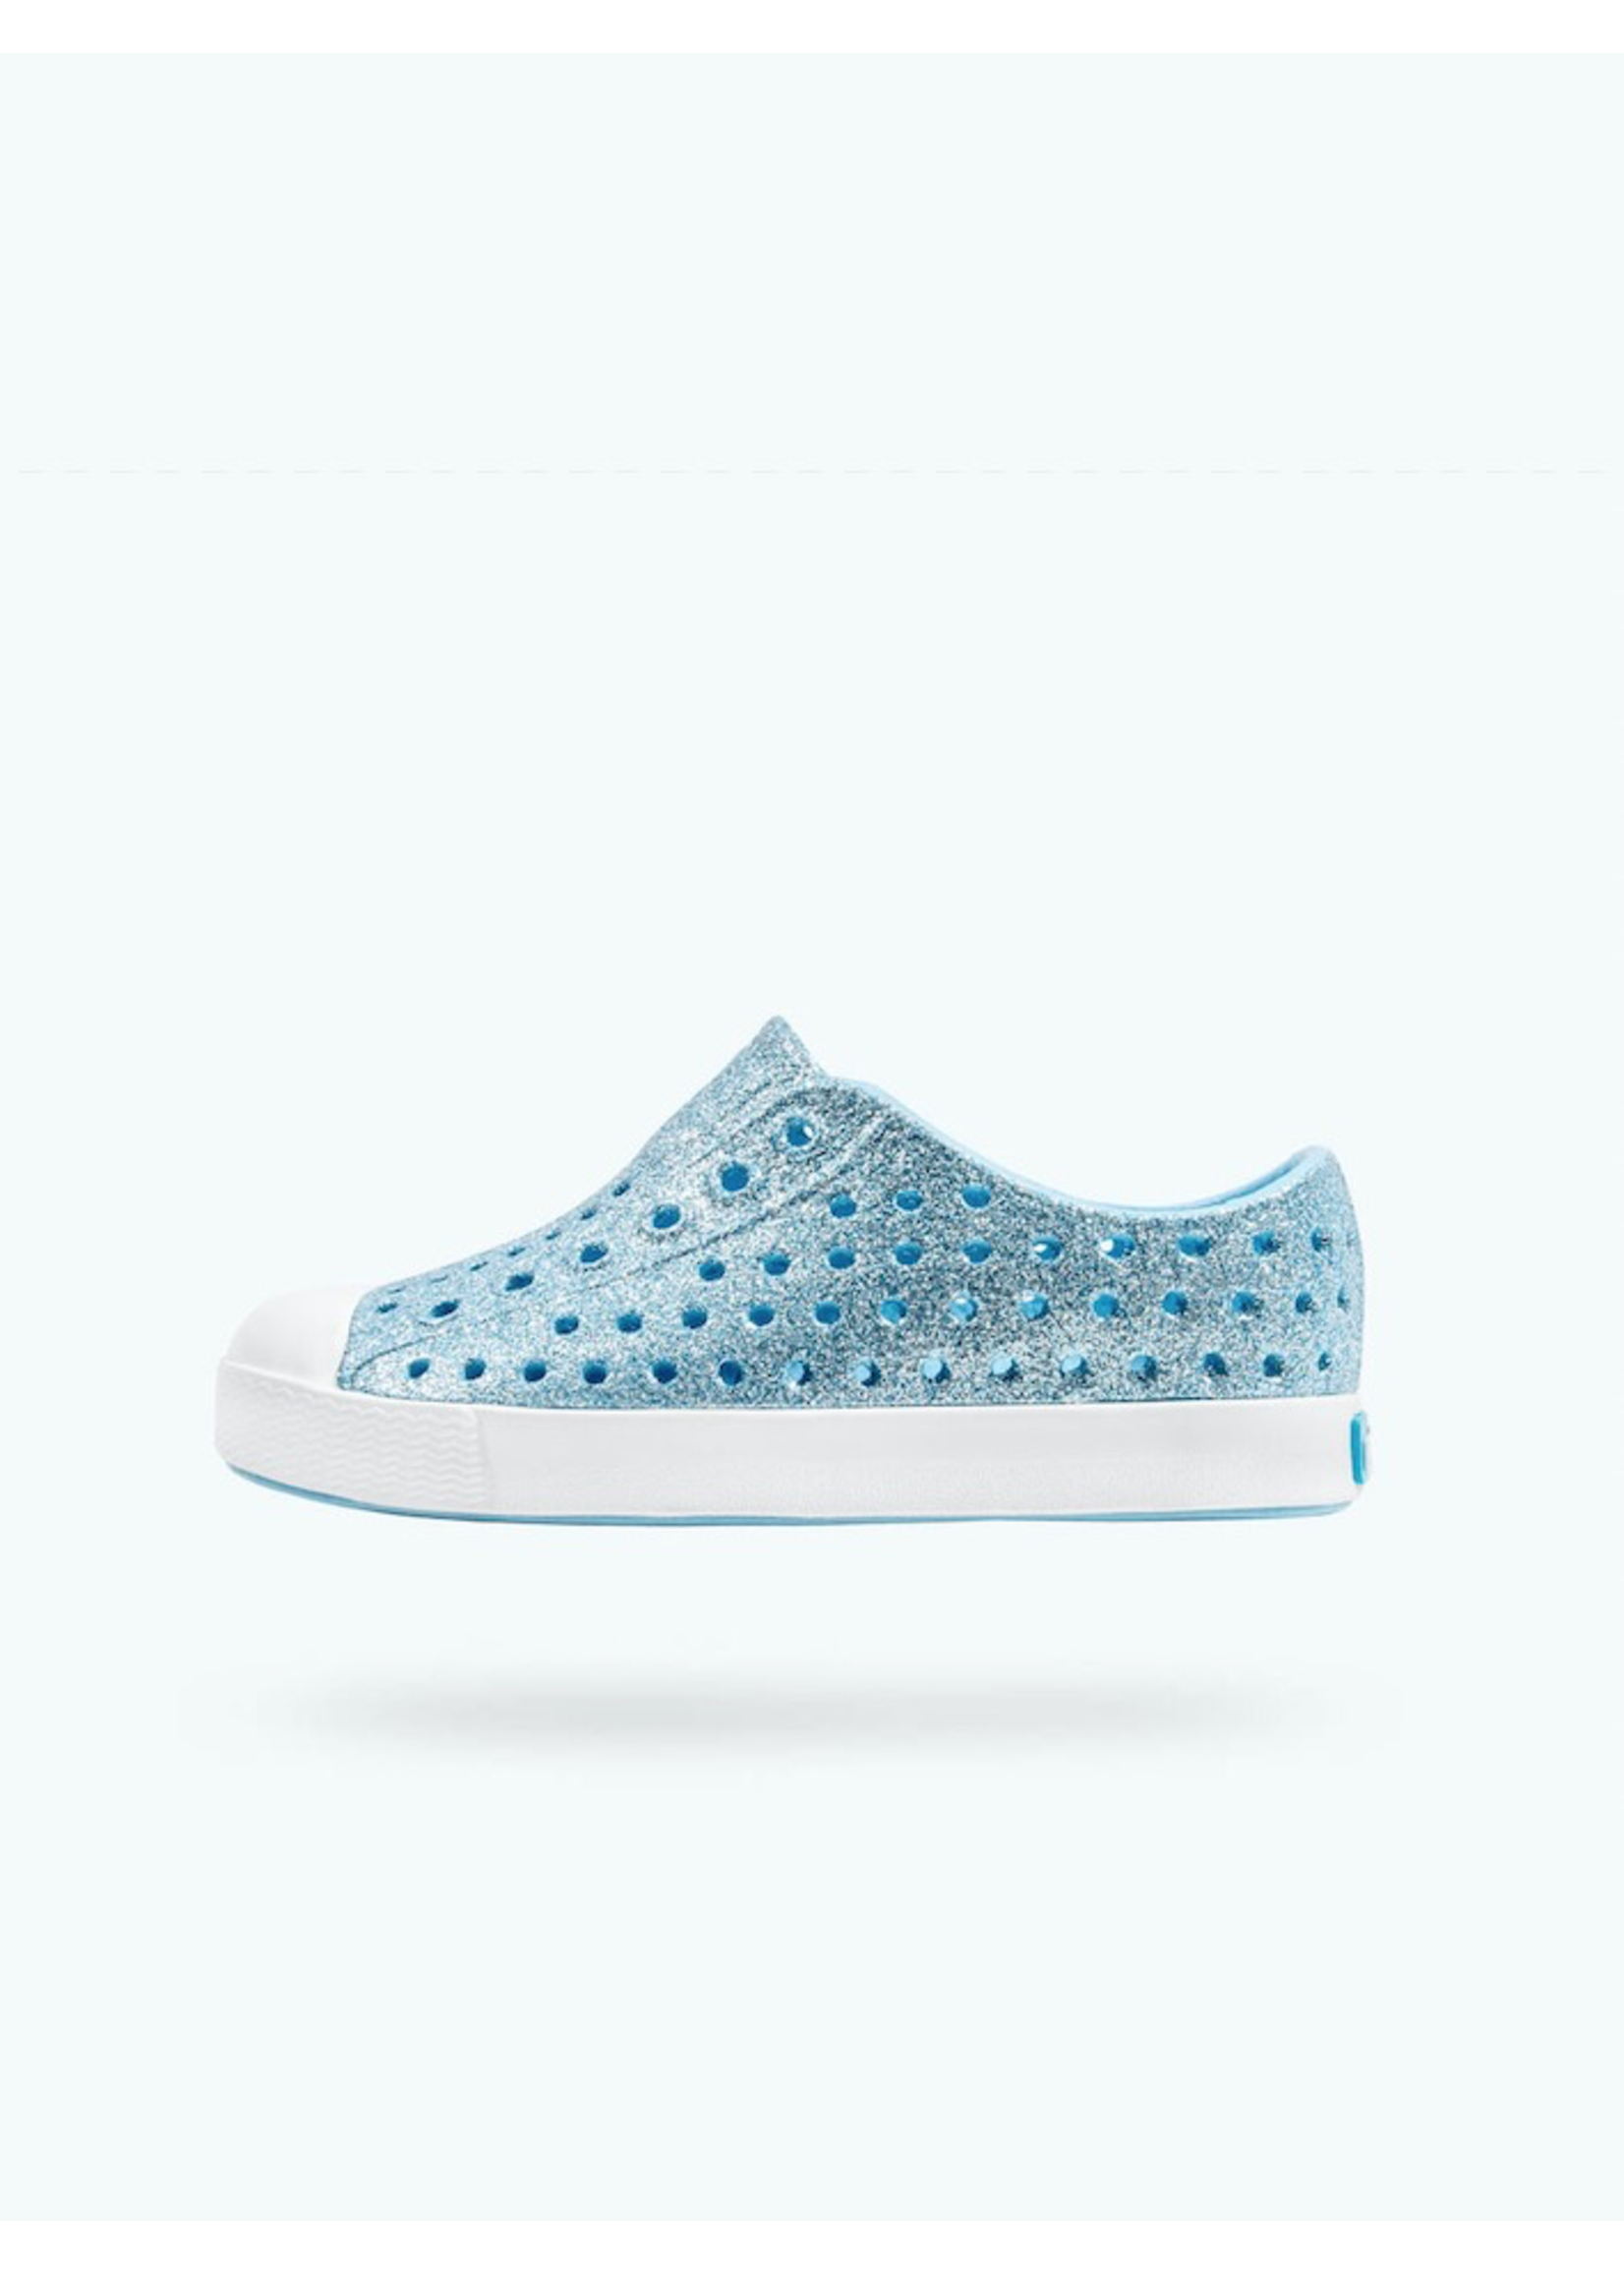 Native Shoes Native Shoes, Jefferson Bling Child in Light Sky Blue